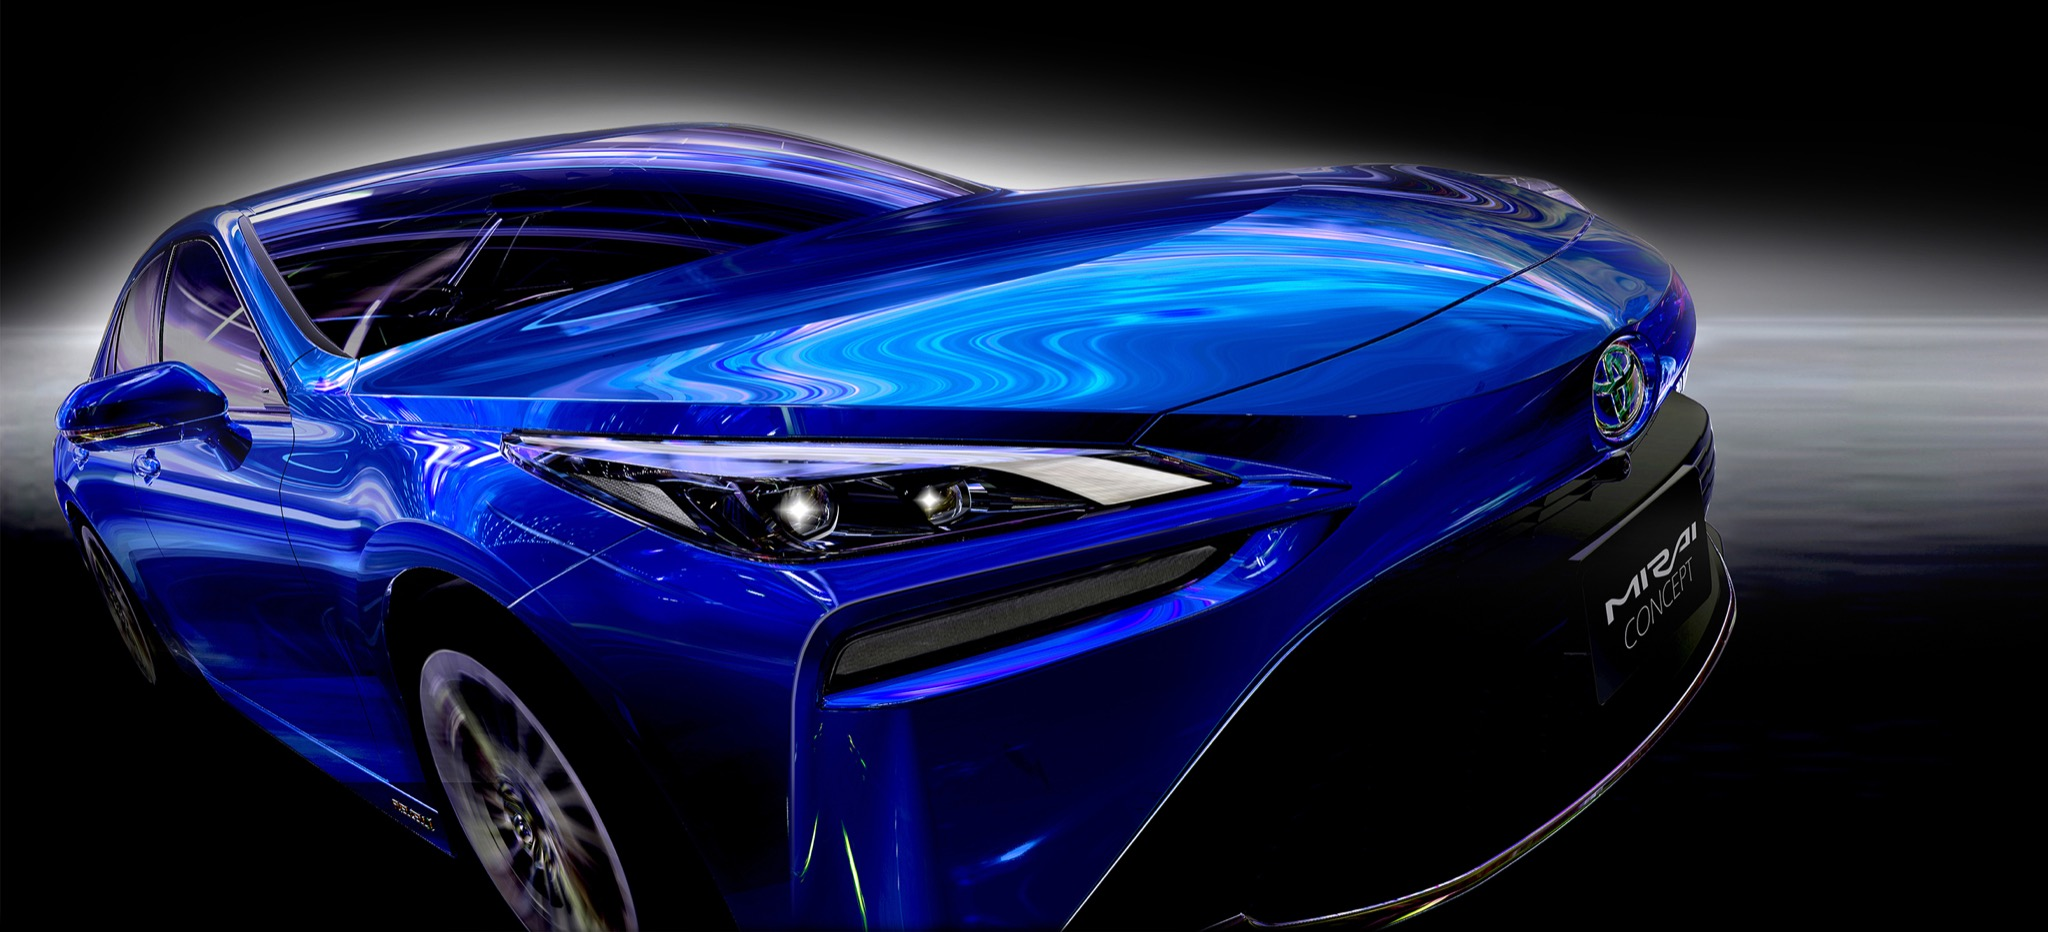 The 2021 Toyota Mirai hydrogen fuel cell car has more luxury, less ugly |  Ars Technica